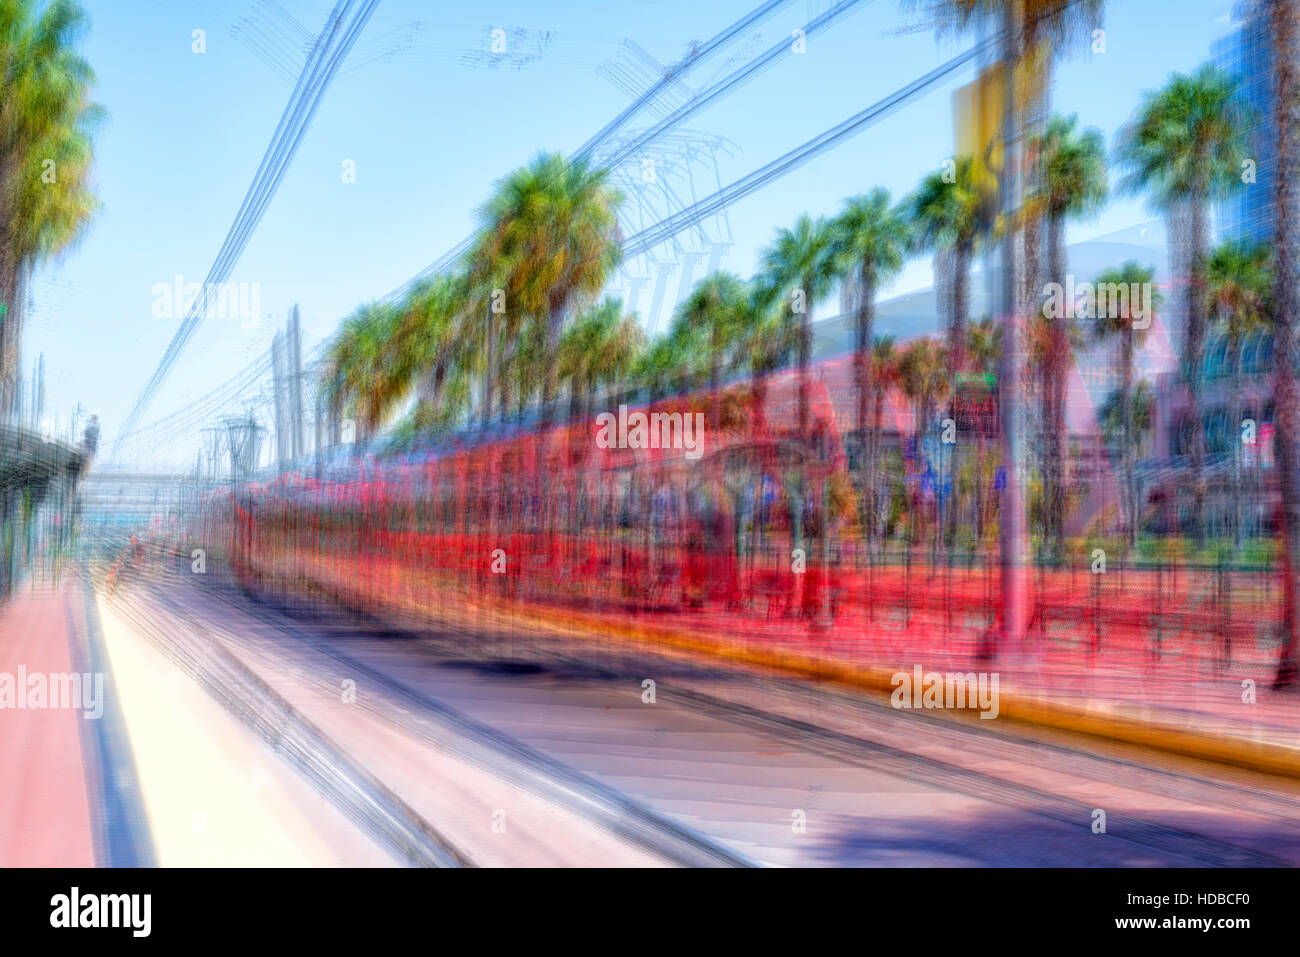 San Diego, California, USA. Impressionist photo of the San Diego Trolley. - Stock Image